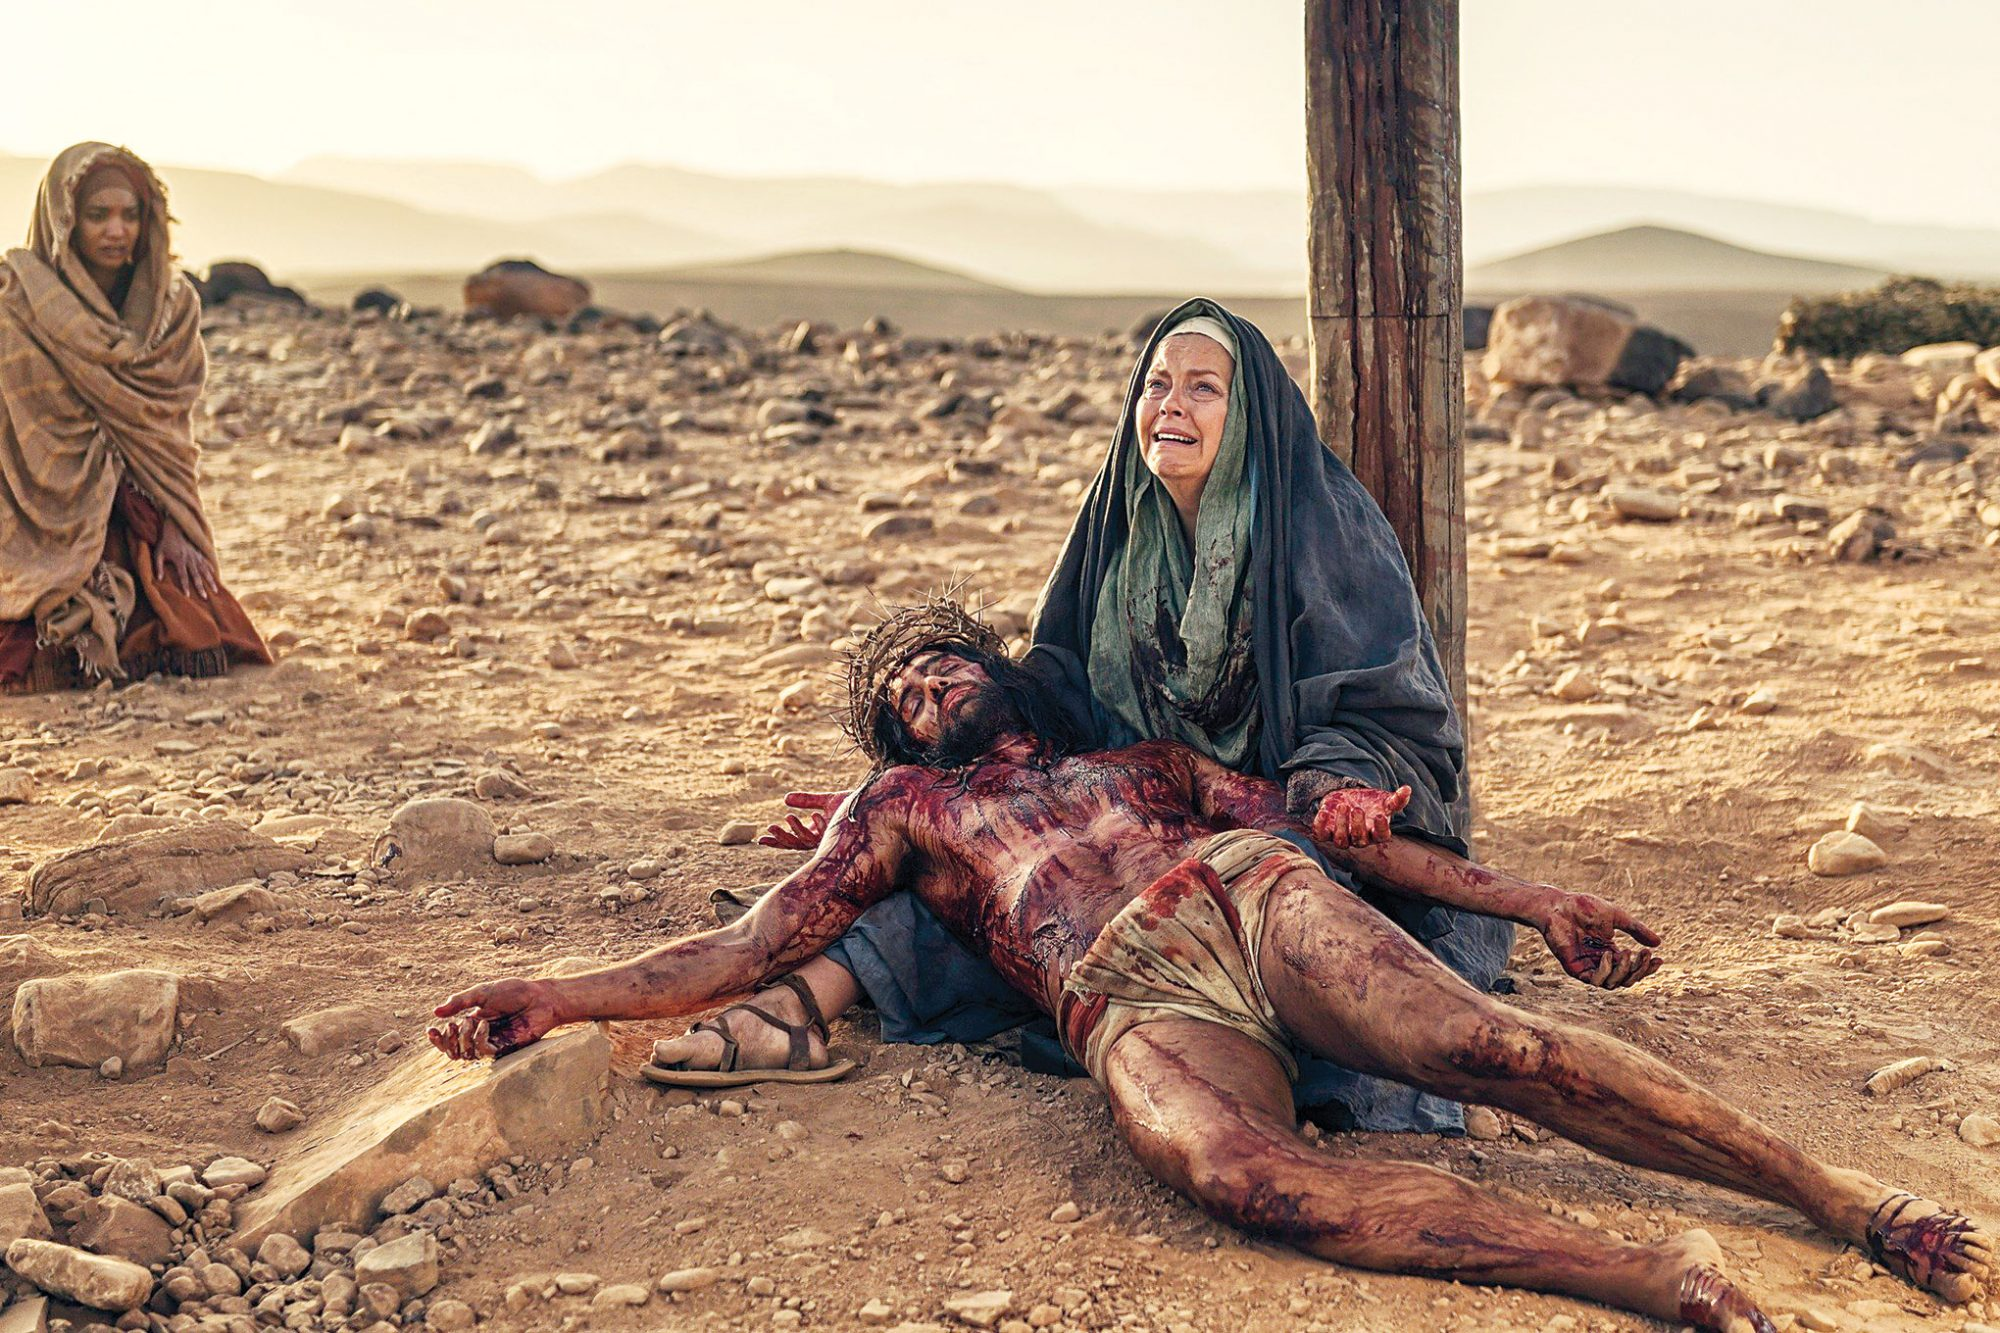 Juan Pablo di Pace and Greta Scacchi in A.D. The Bible Continues